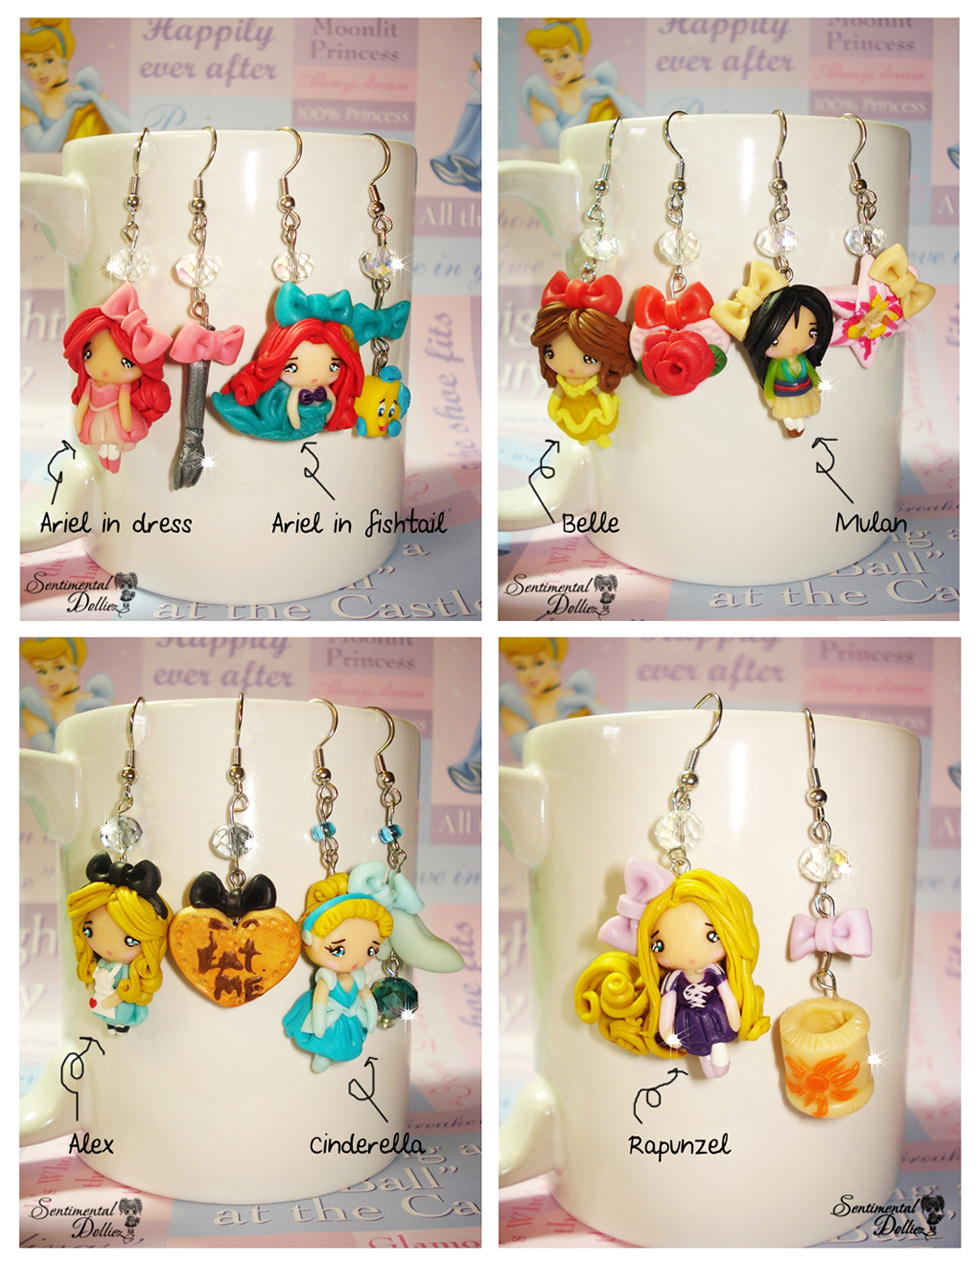 Disney Princess Earrings Collections by SentimentalDolliez